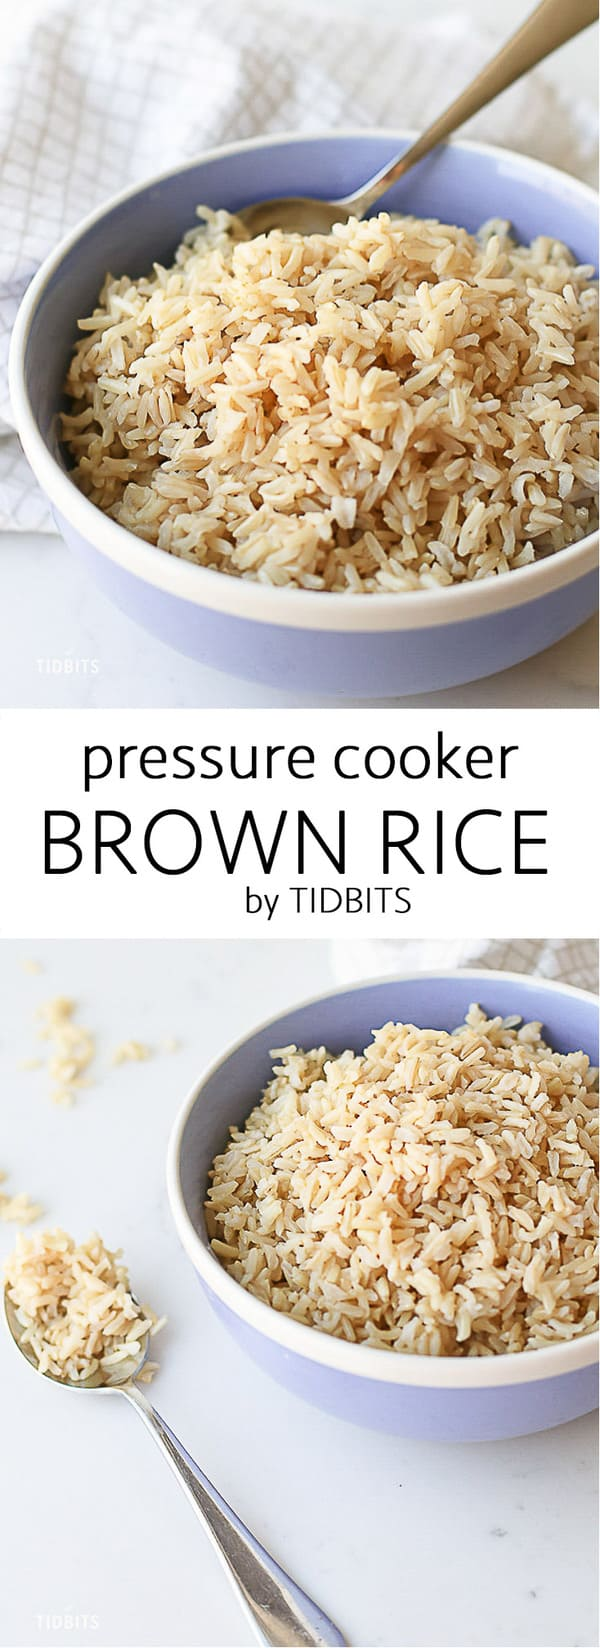 This perfectly cooked, pressure cooker brown rice is made in half the time of the traditional stovetop method and is completely hands off! Healthy, hearty whole grains just got soooo convenient! Instant pot rice | quick rice | easy rice recipe #instantpotrice #easyrecipe #pressurecookerrice